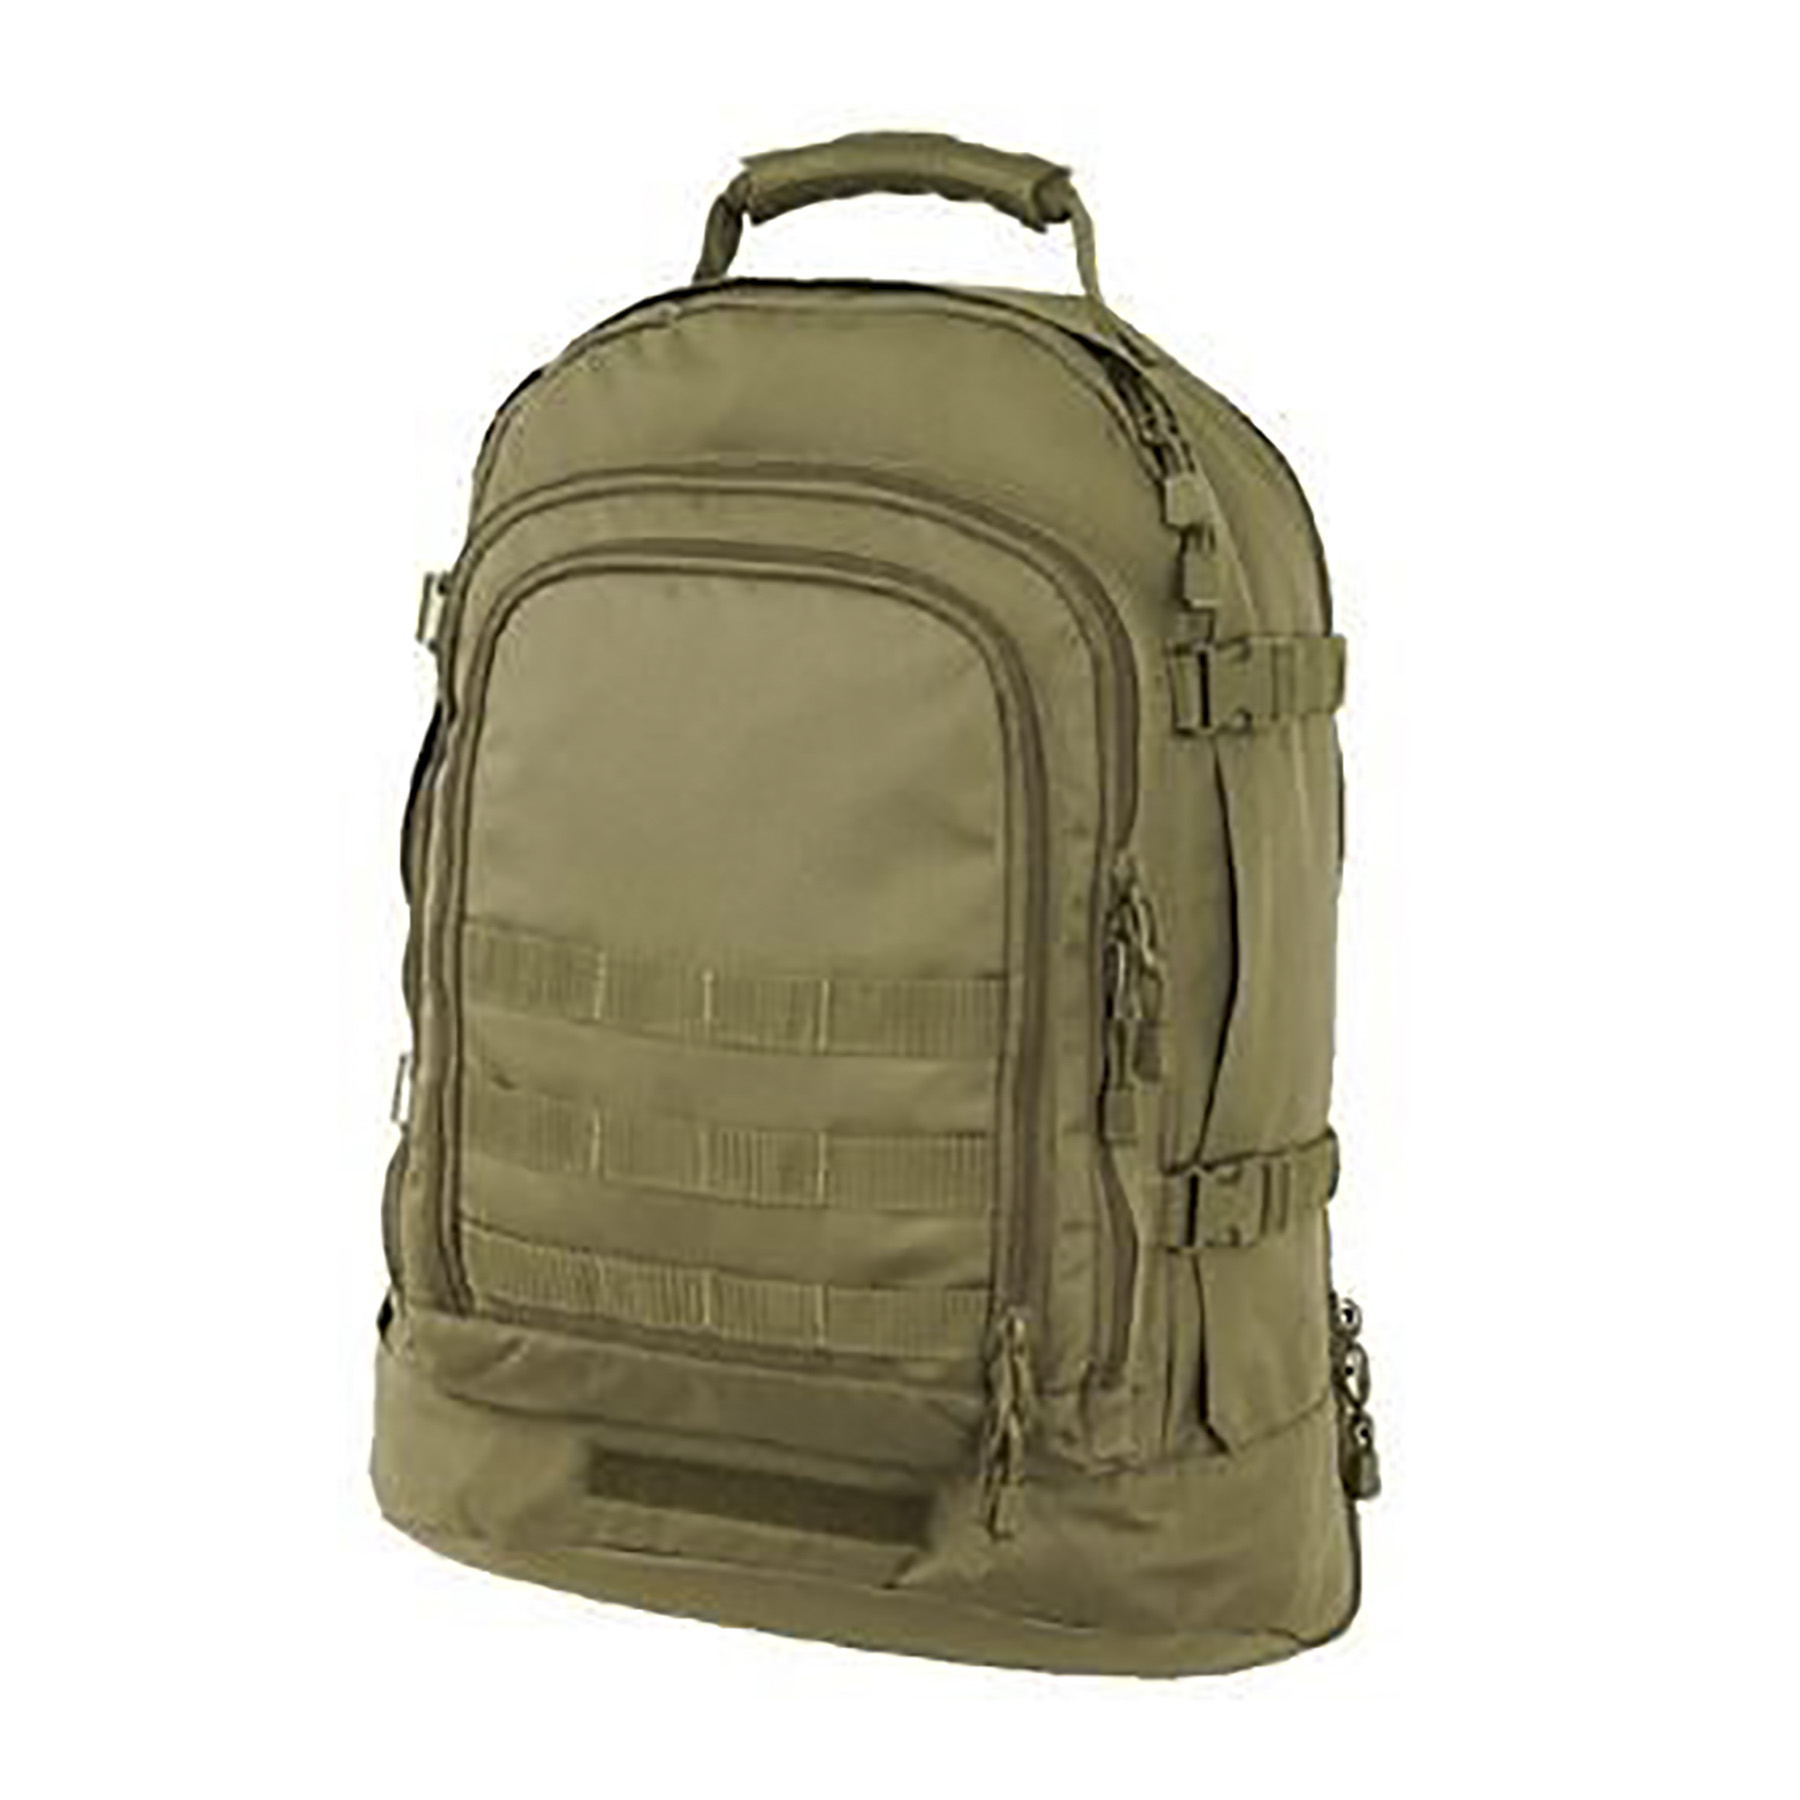 Mercury Luggage 3-Day Backpack at Patriot Outfitters 6389f0a3d00